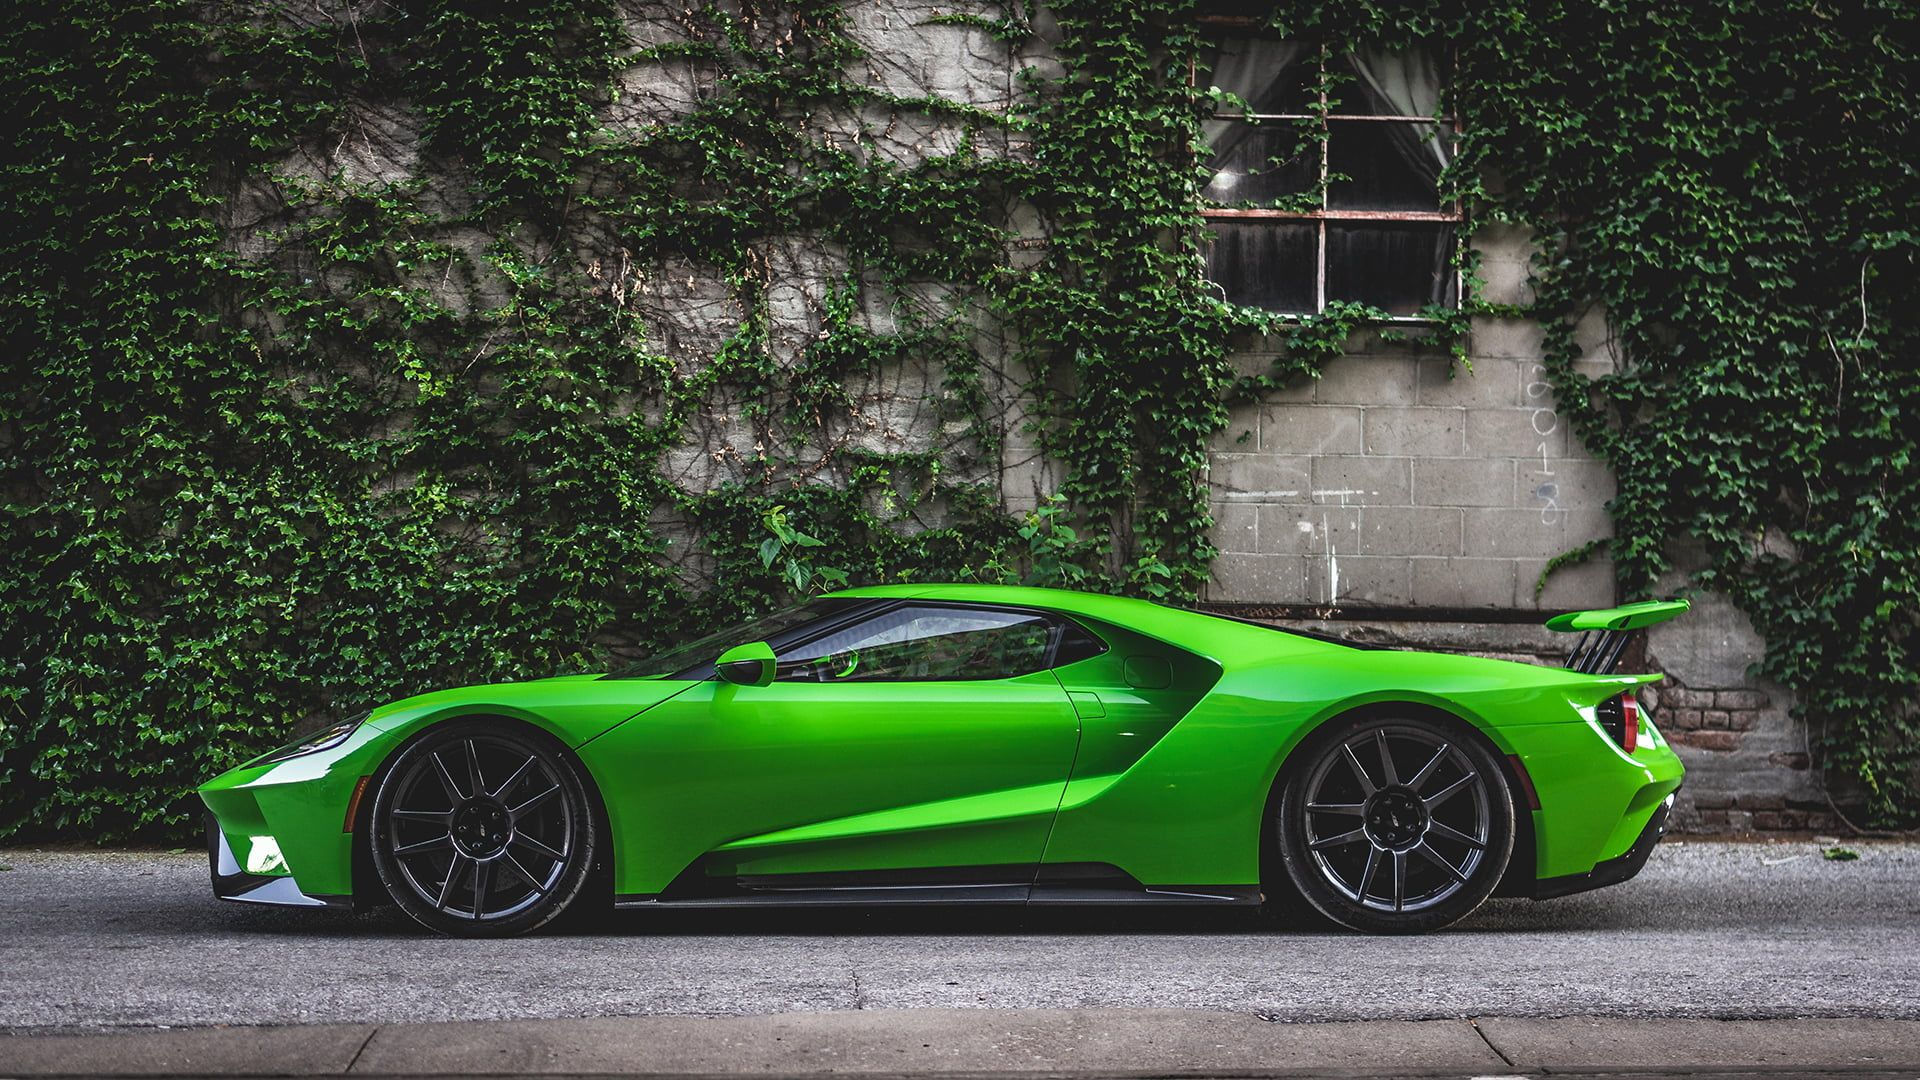 Photography Car 2017 Ford Gt Side View 1080p Wallpaper Hdwallpaper Desktop Ford Gt Best Luxury Cars Super Cars